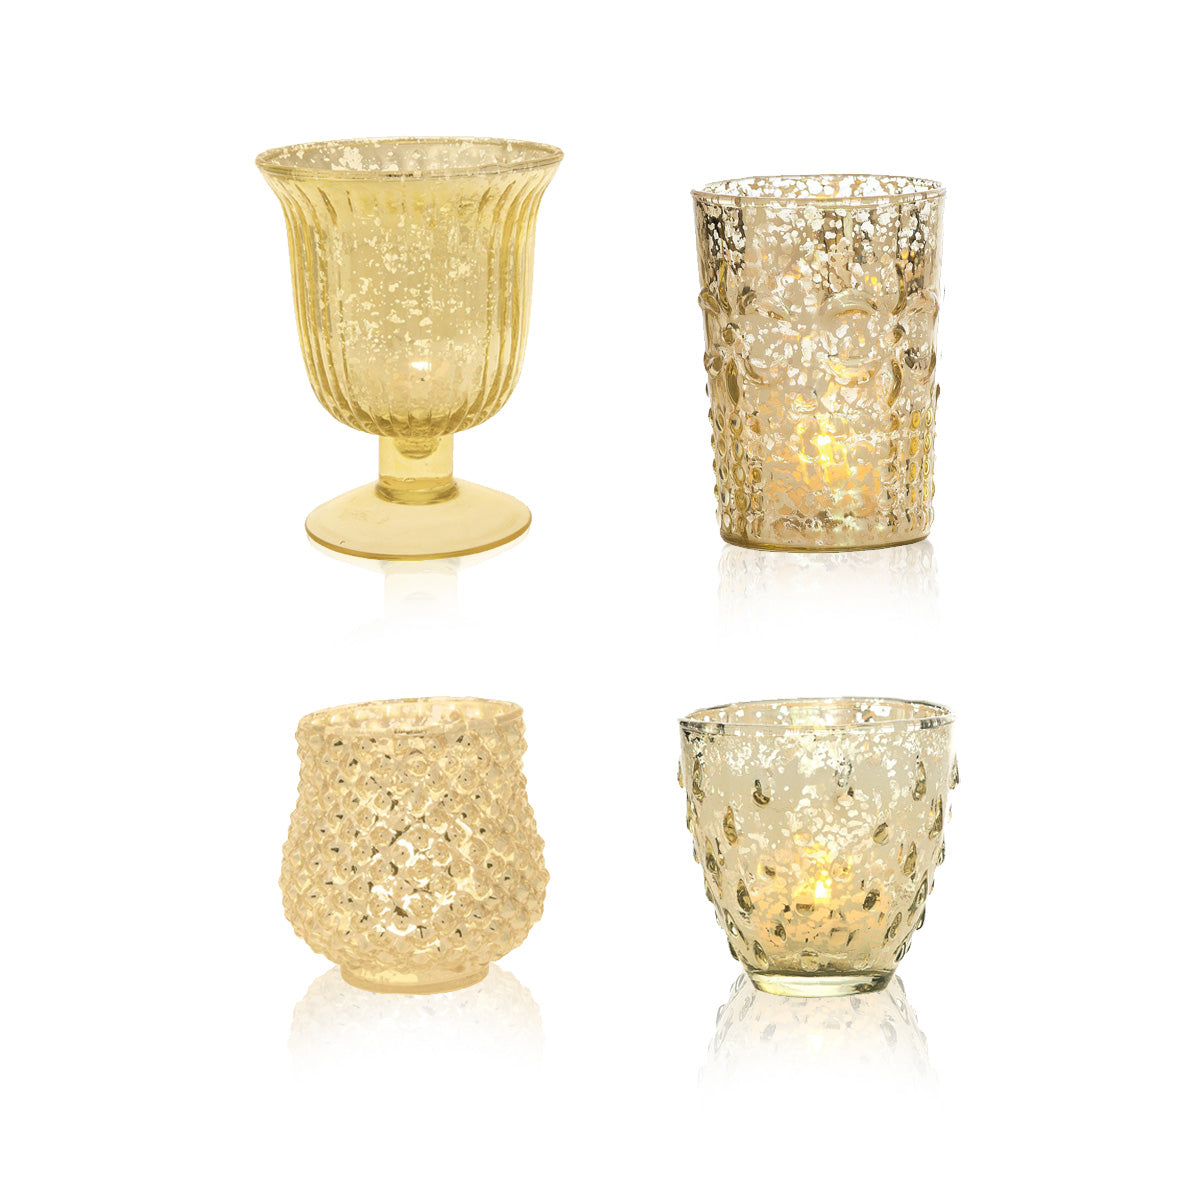 Farmhouse Gold Mercury Glass Tea Light Votive Candle Holders (Set of 4, Assorted Designs and Sizes)